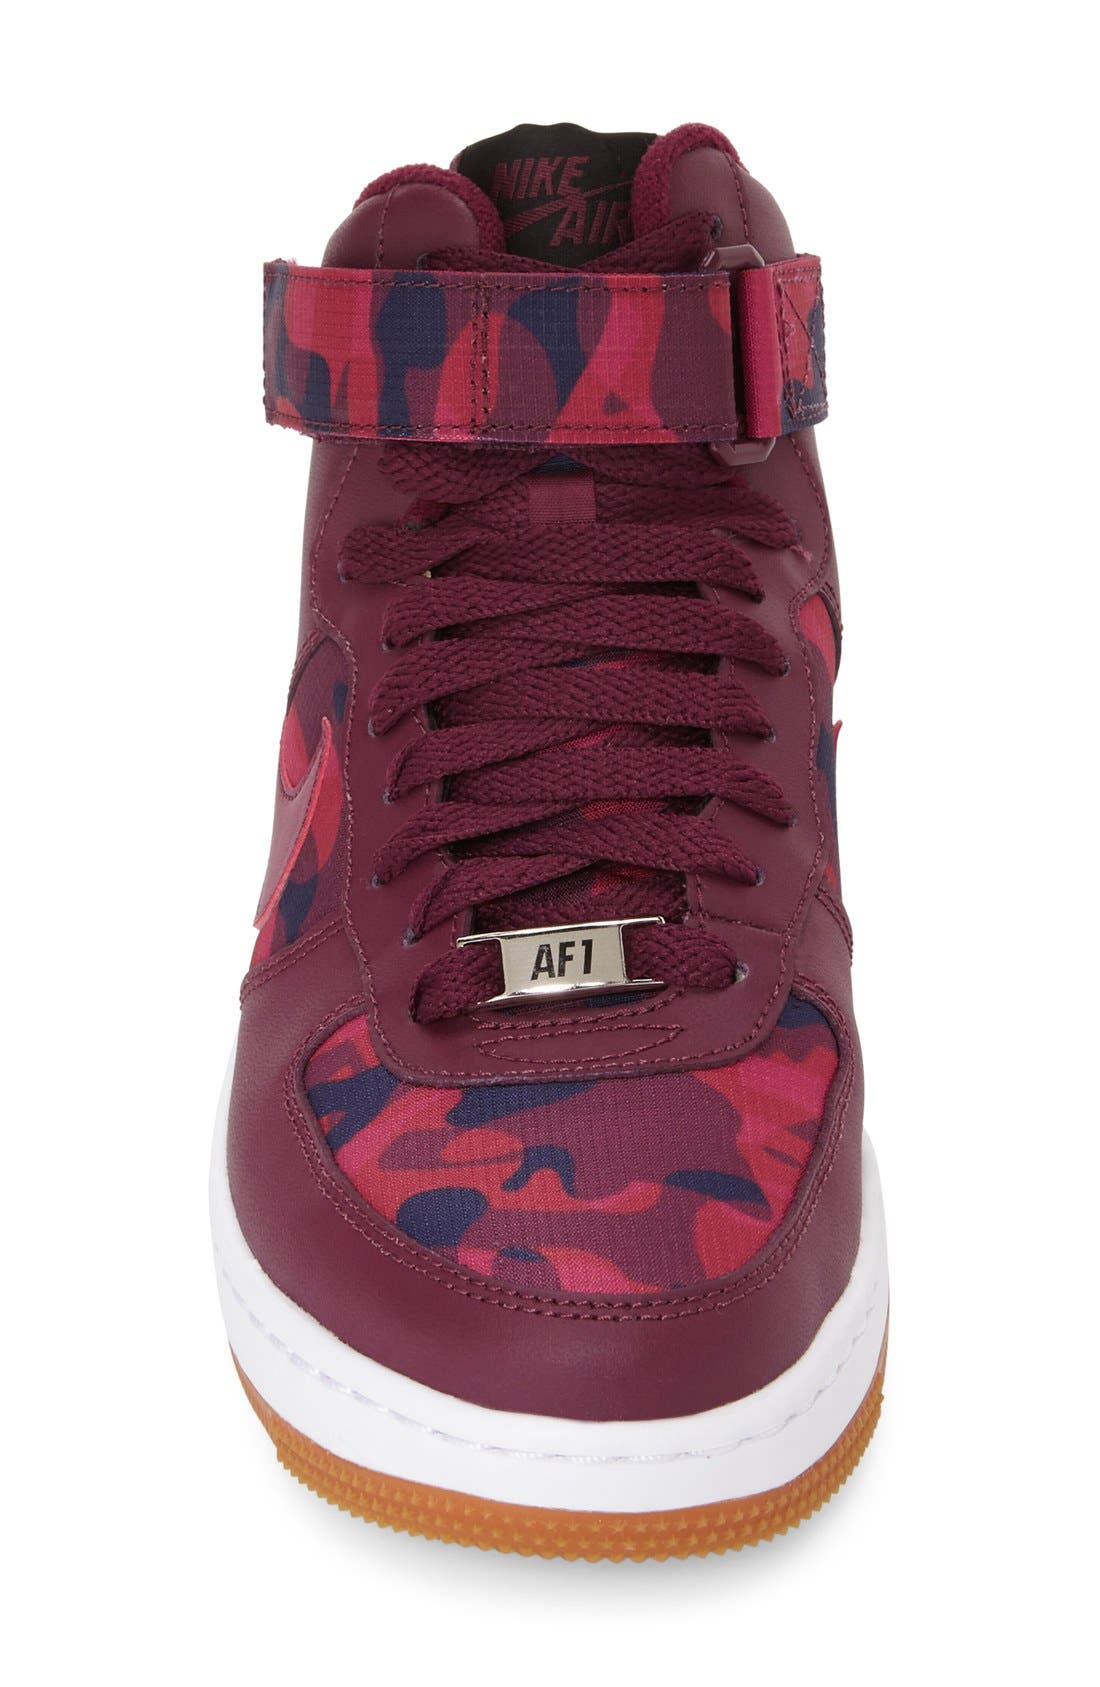 Alternate Image 3  - Nike 'AF-1 Ultra Force' Sneaker (Women)